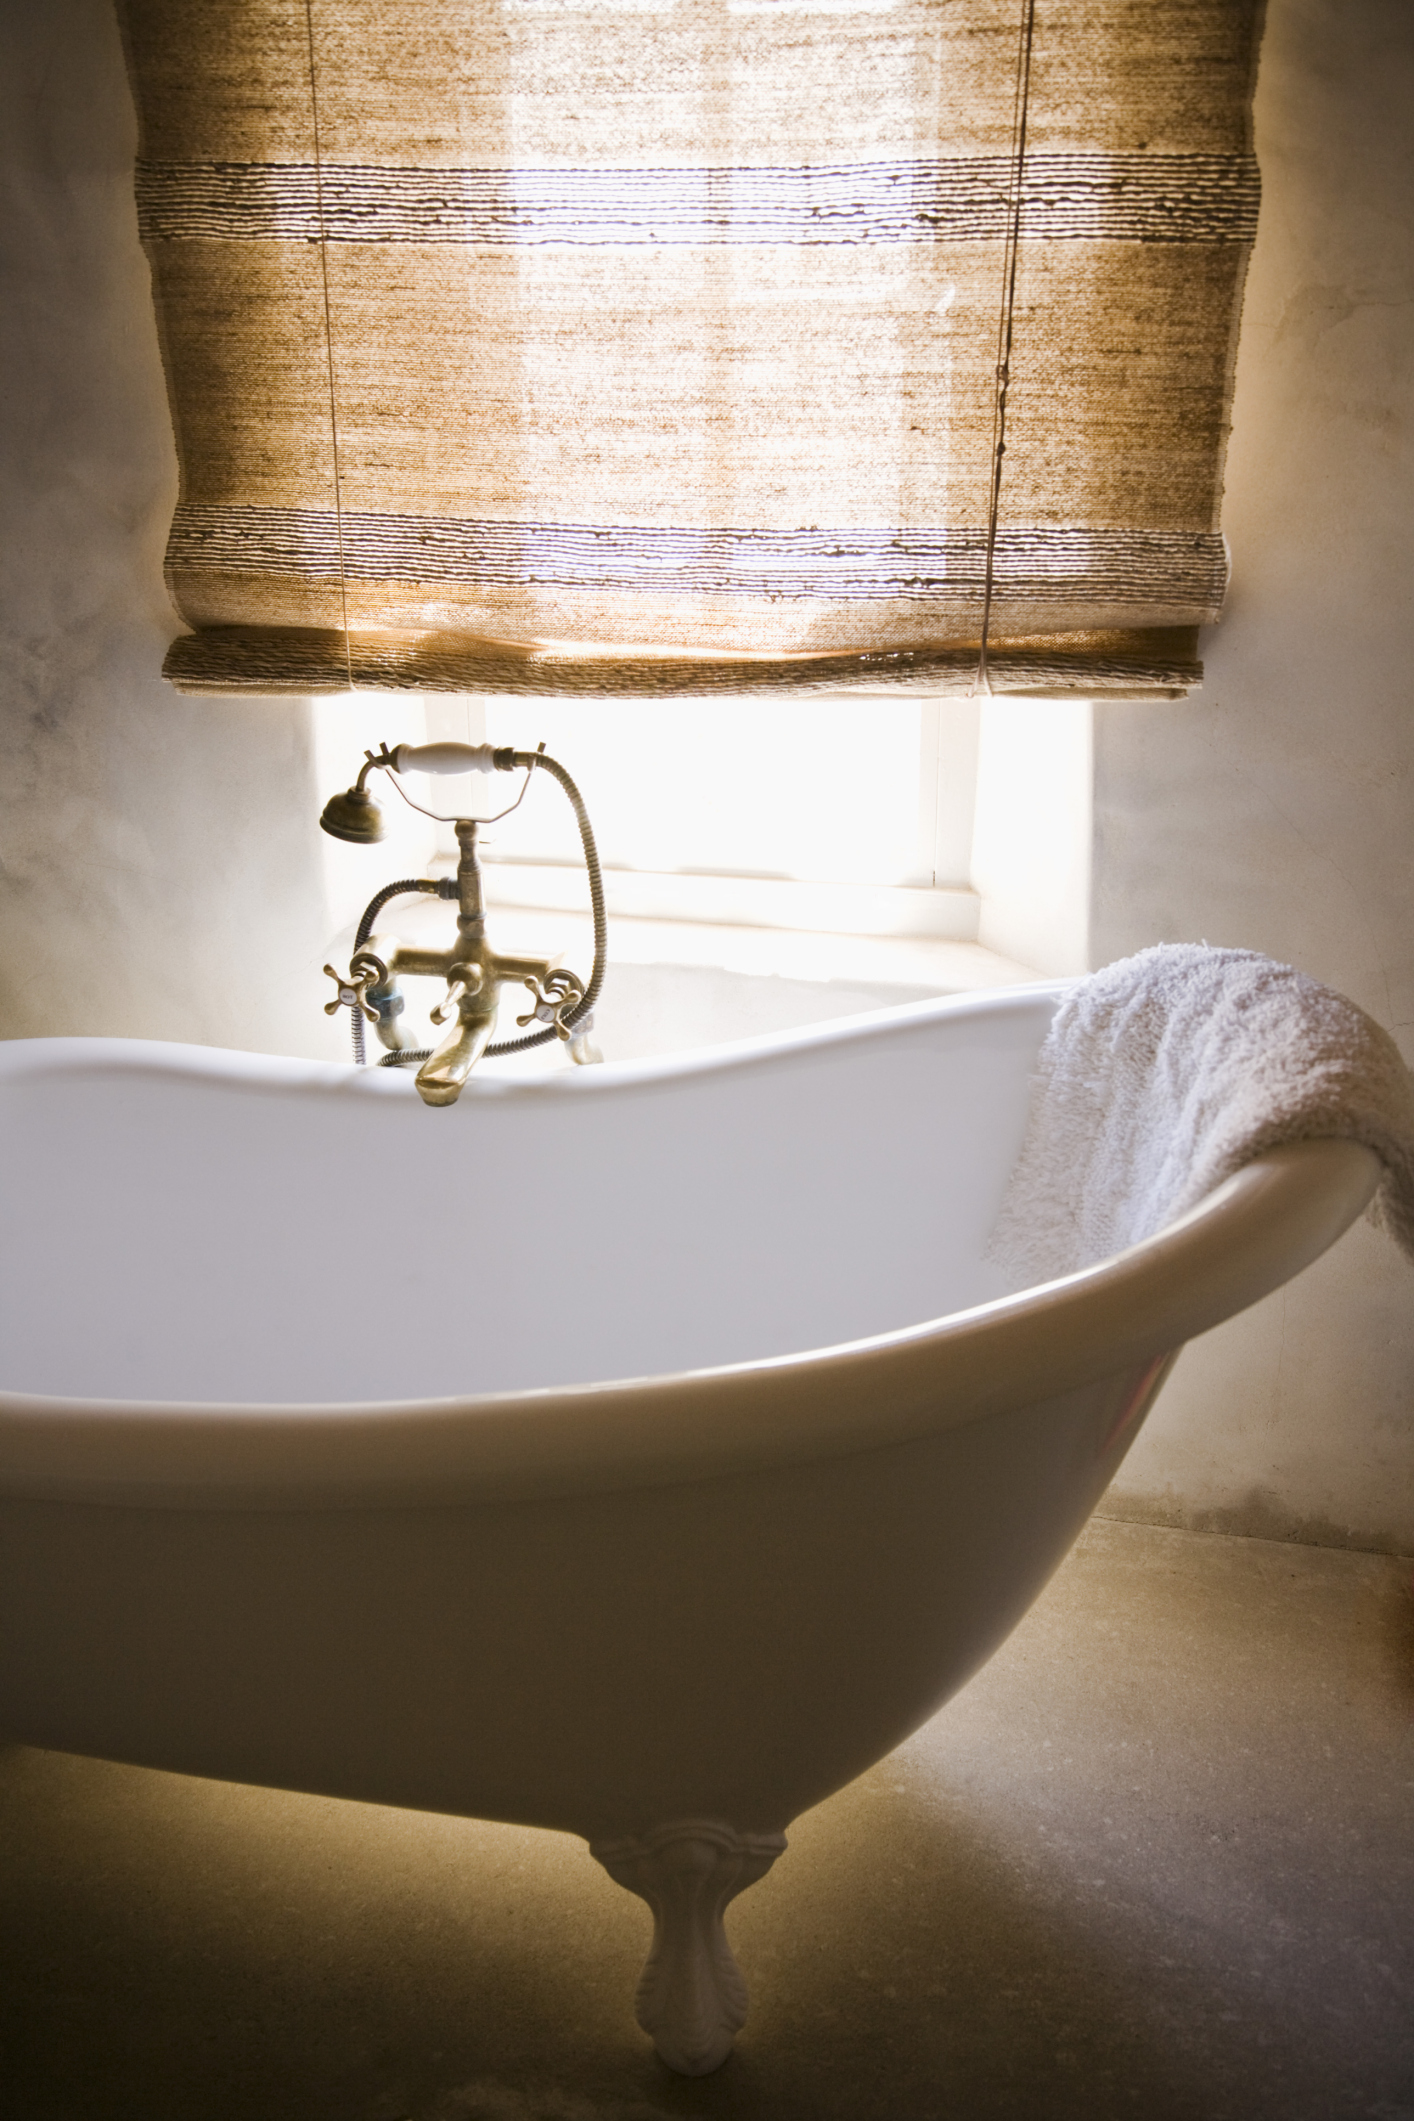 up kit bathroom uk touch repair how bathtub fiberglass interior paint to white almond and idea ideas a black